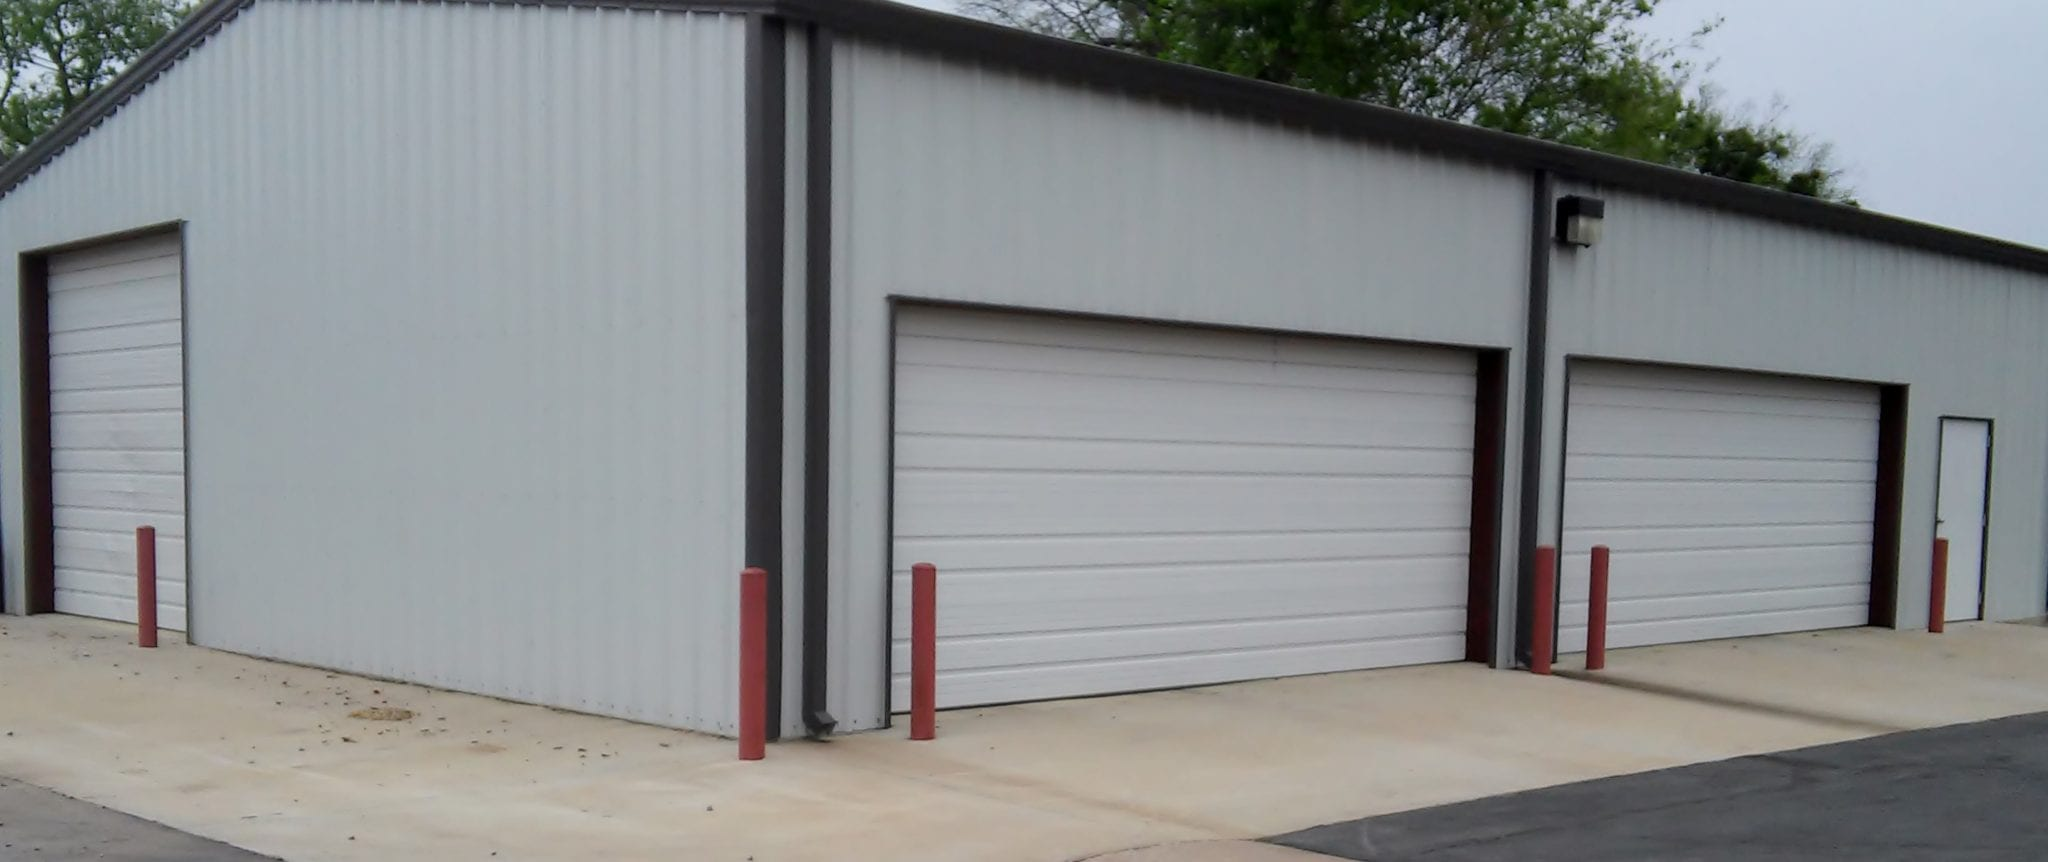 how to fix overhead garage door